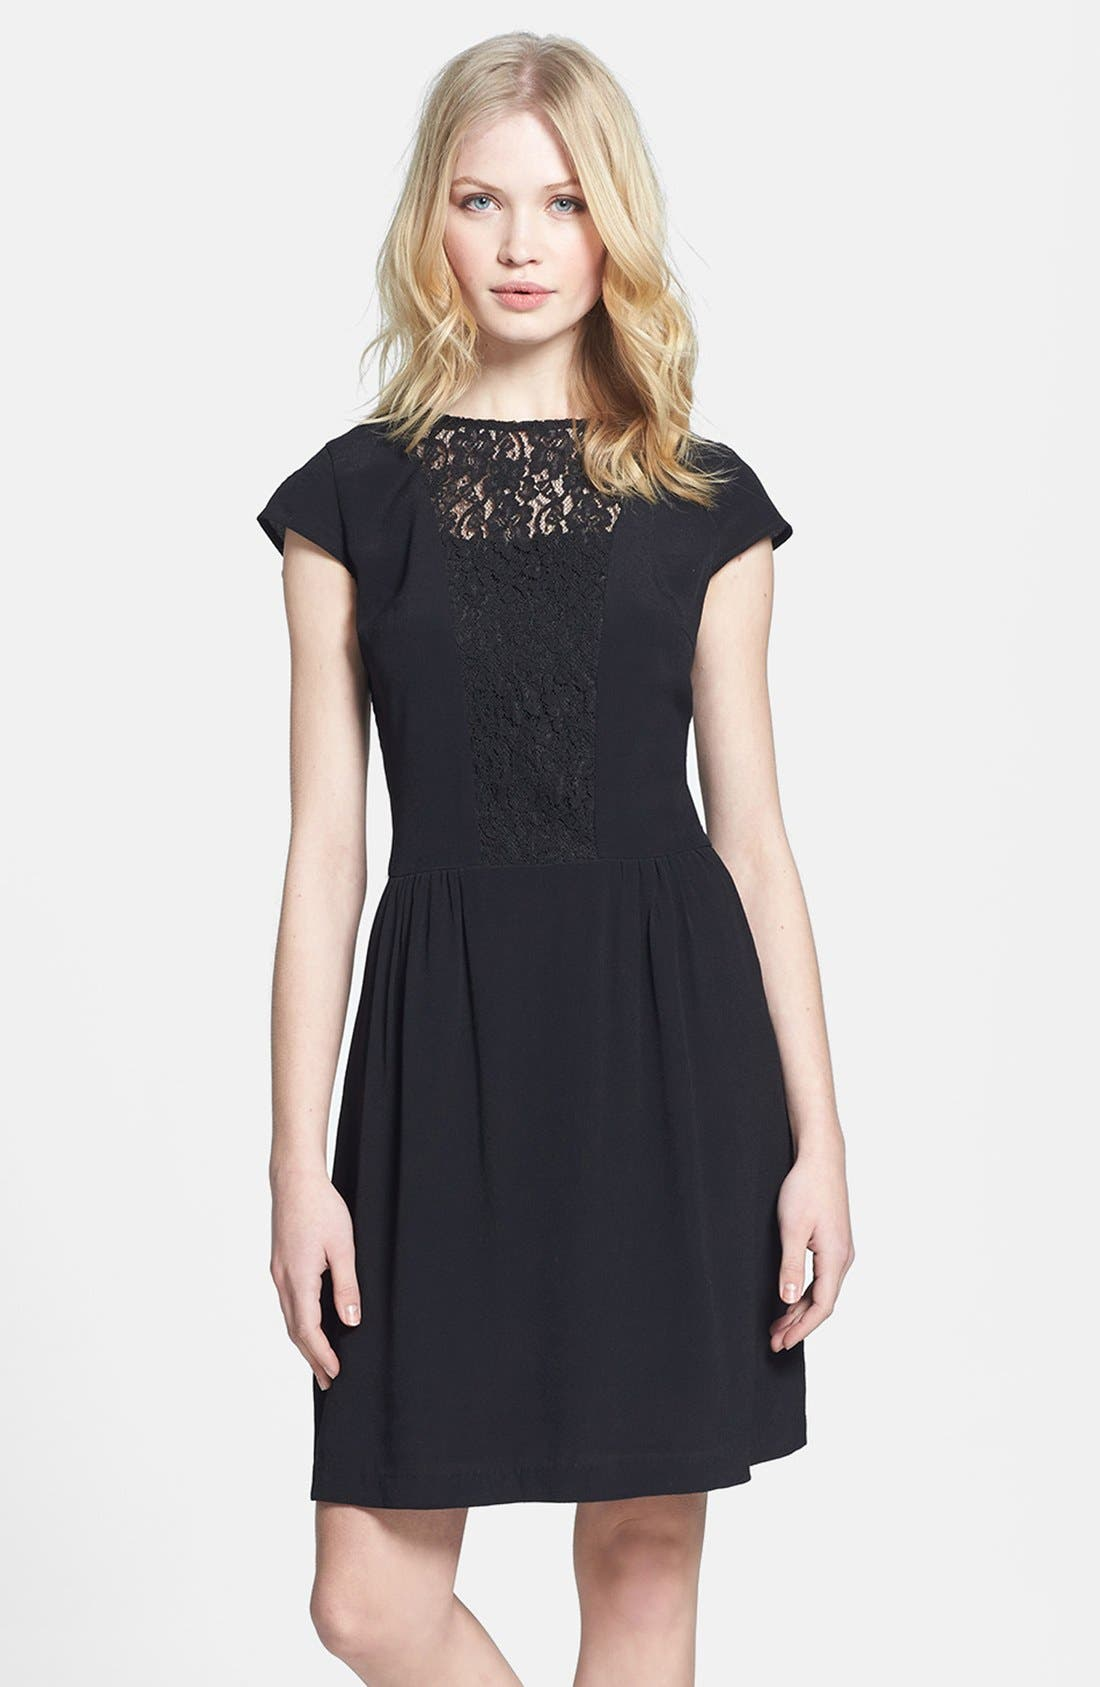 Alternate Image 1 Selected - MM Couture Lace Inset Fit & Flare Dress